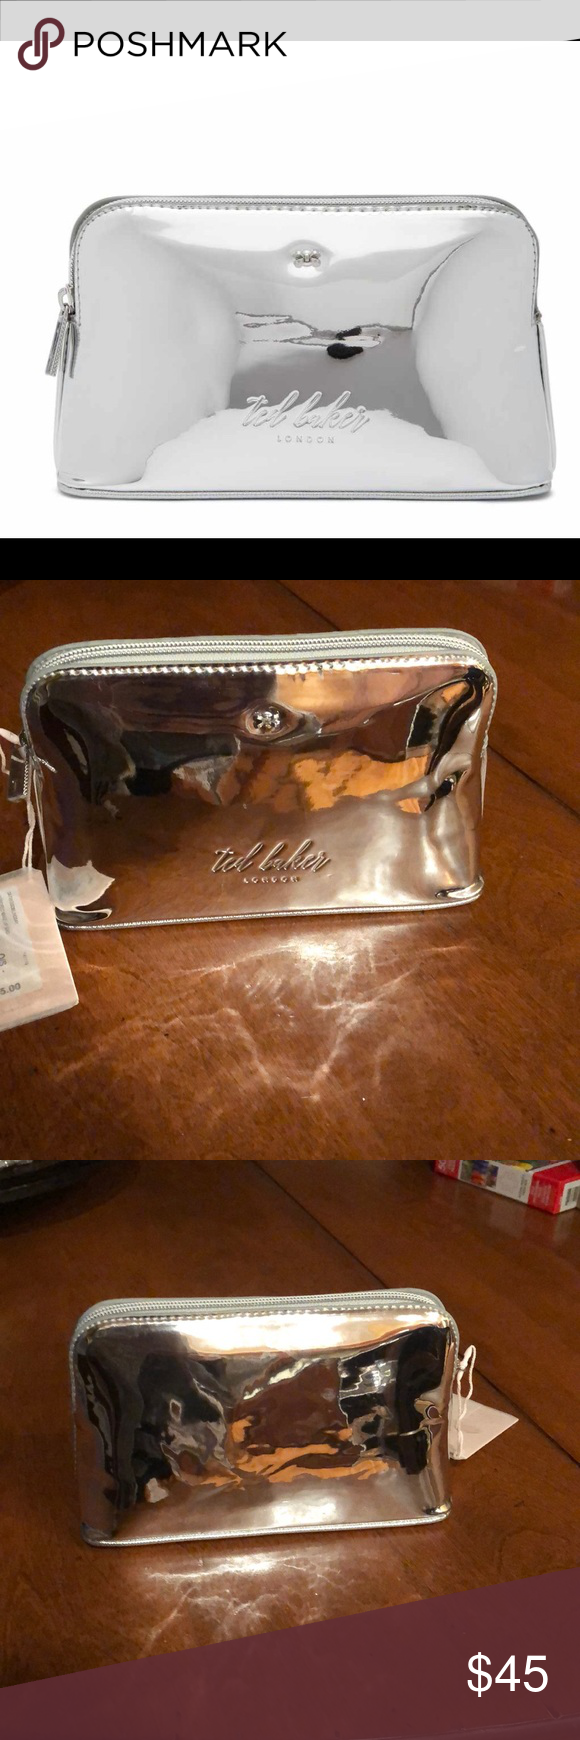 4457dfea0 Ted Baker Lindsay mirror cosmetic bag Ted Baker Lindsay mirrored cosmetic  bag. This cosmetic bag